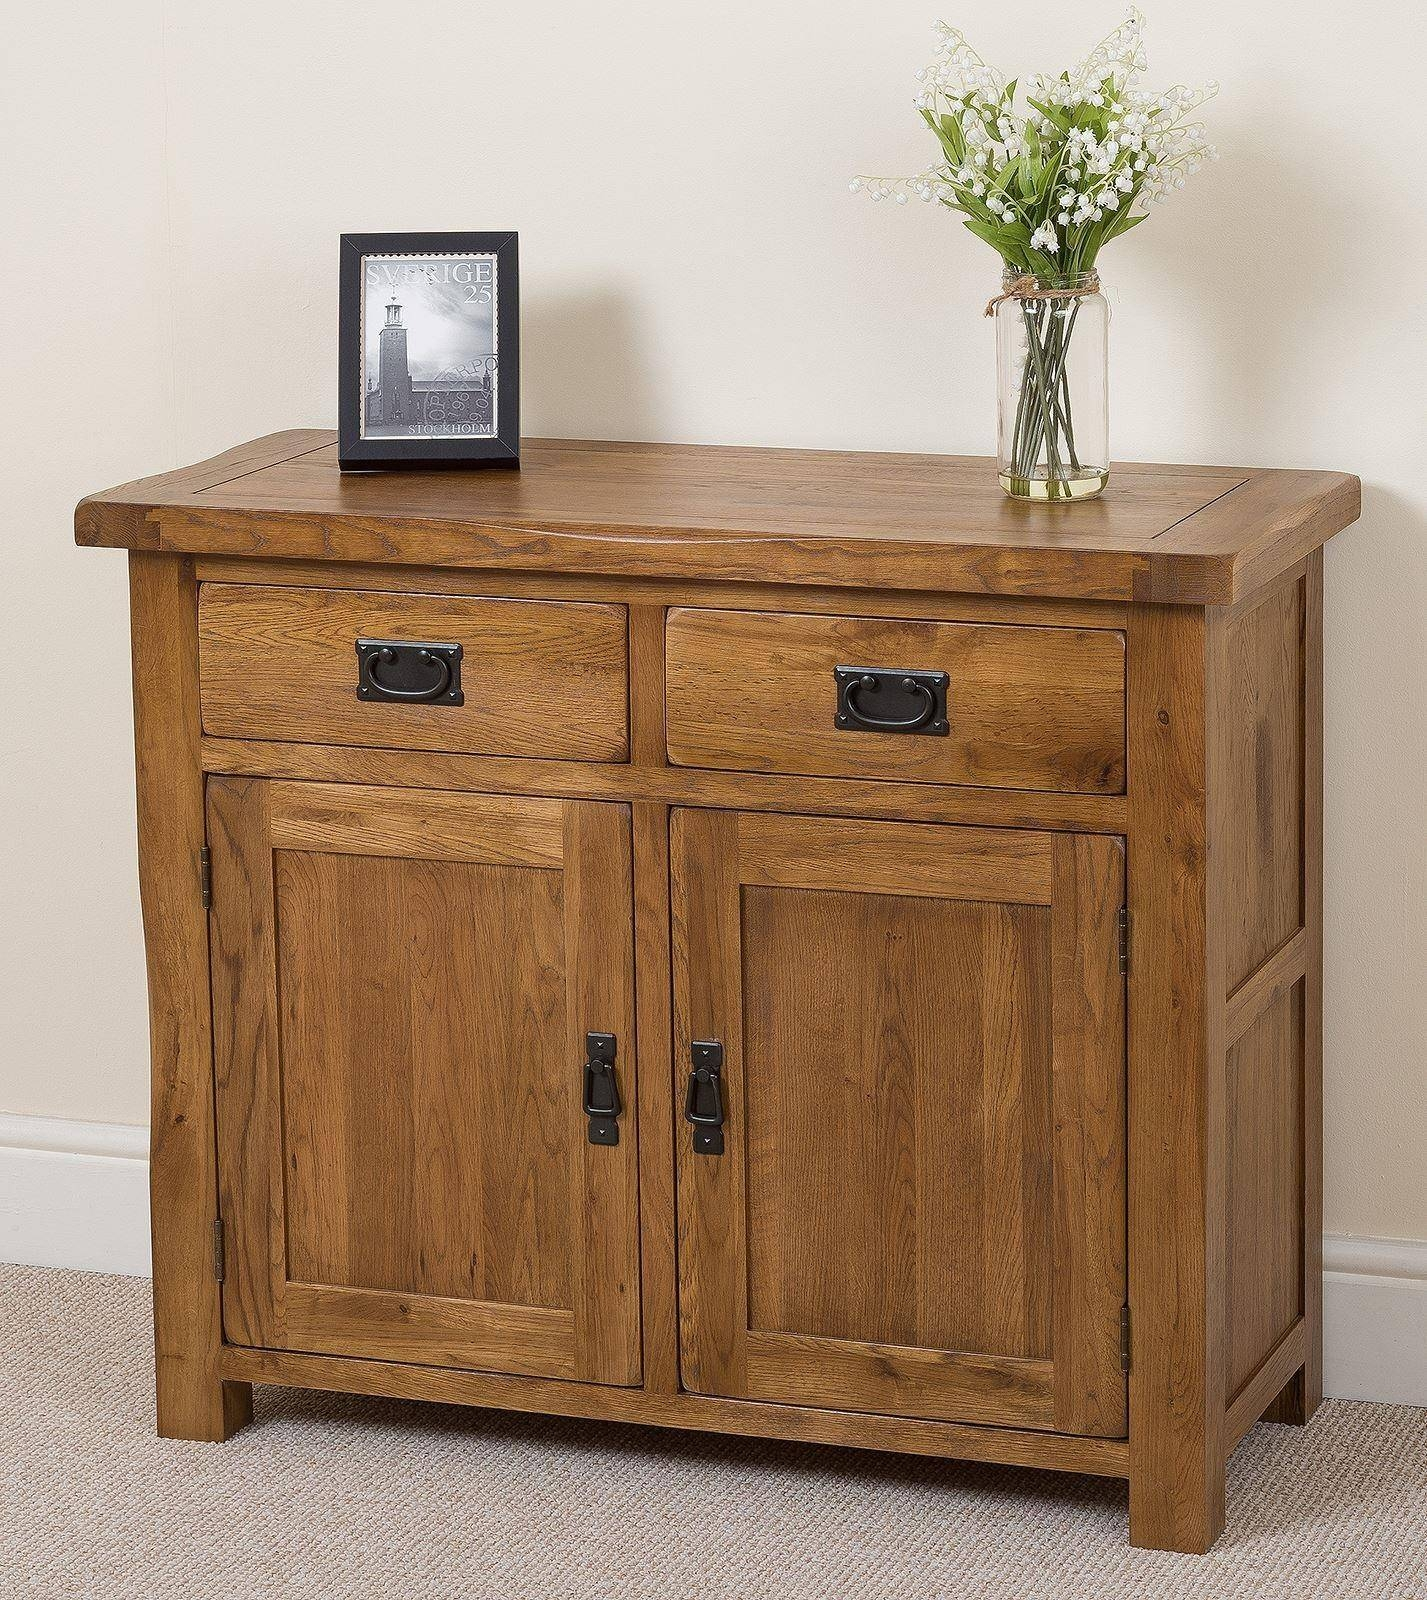 Decor: Rustic Sideboards And Buffets And Rustic Sideboard intended for Rustic Sideboards (Image 12 of 30)